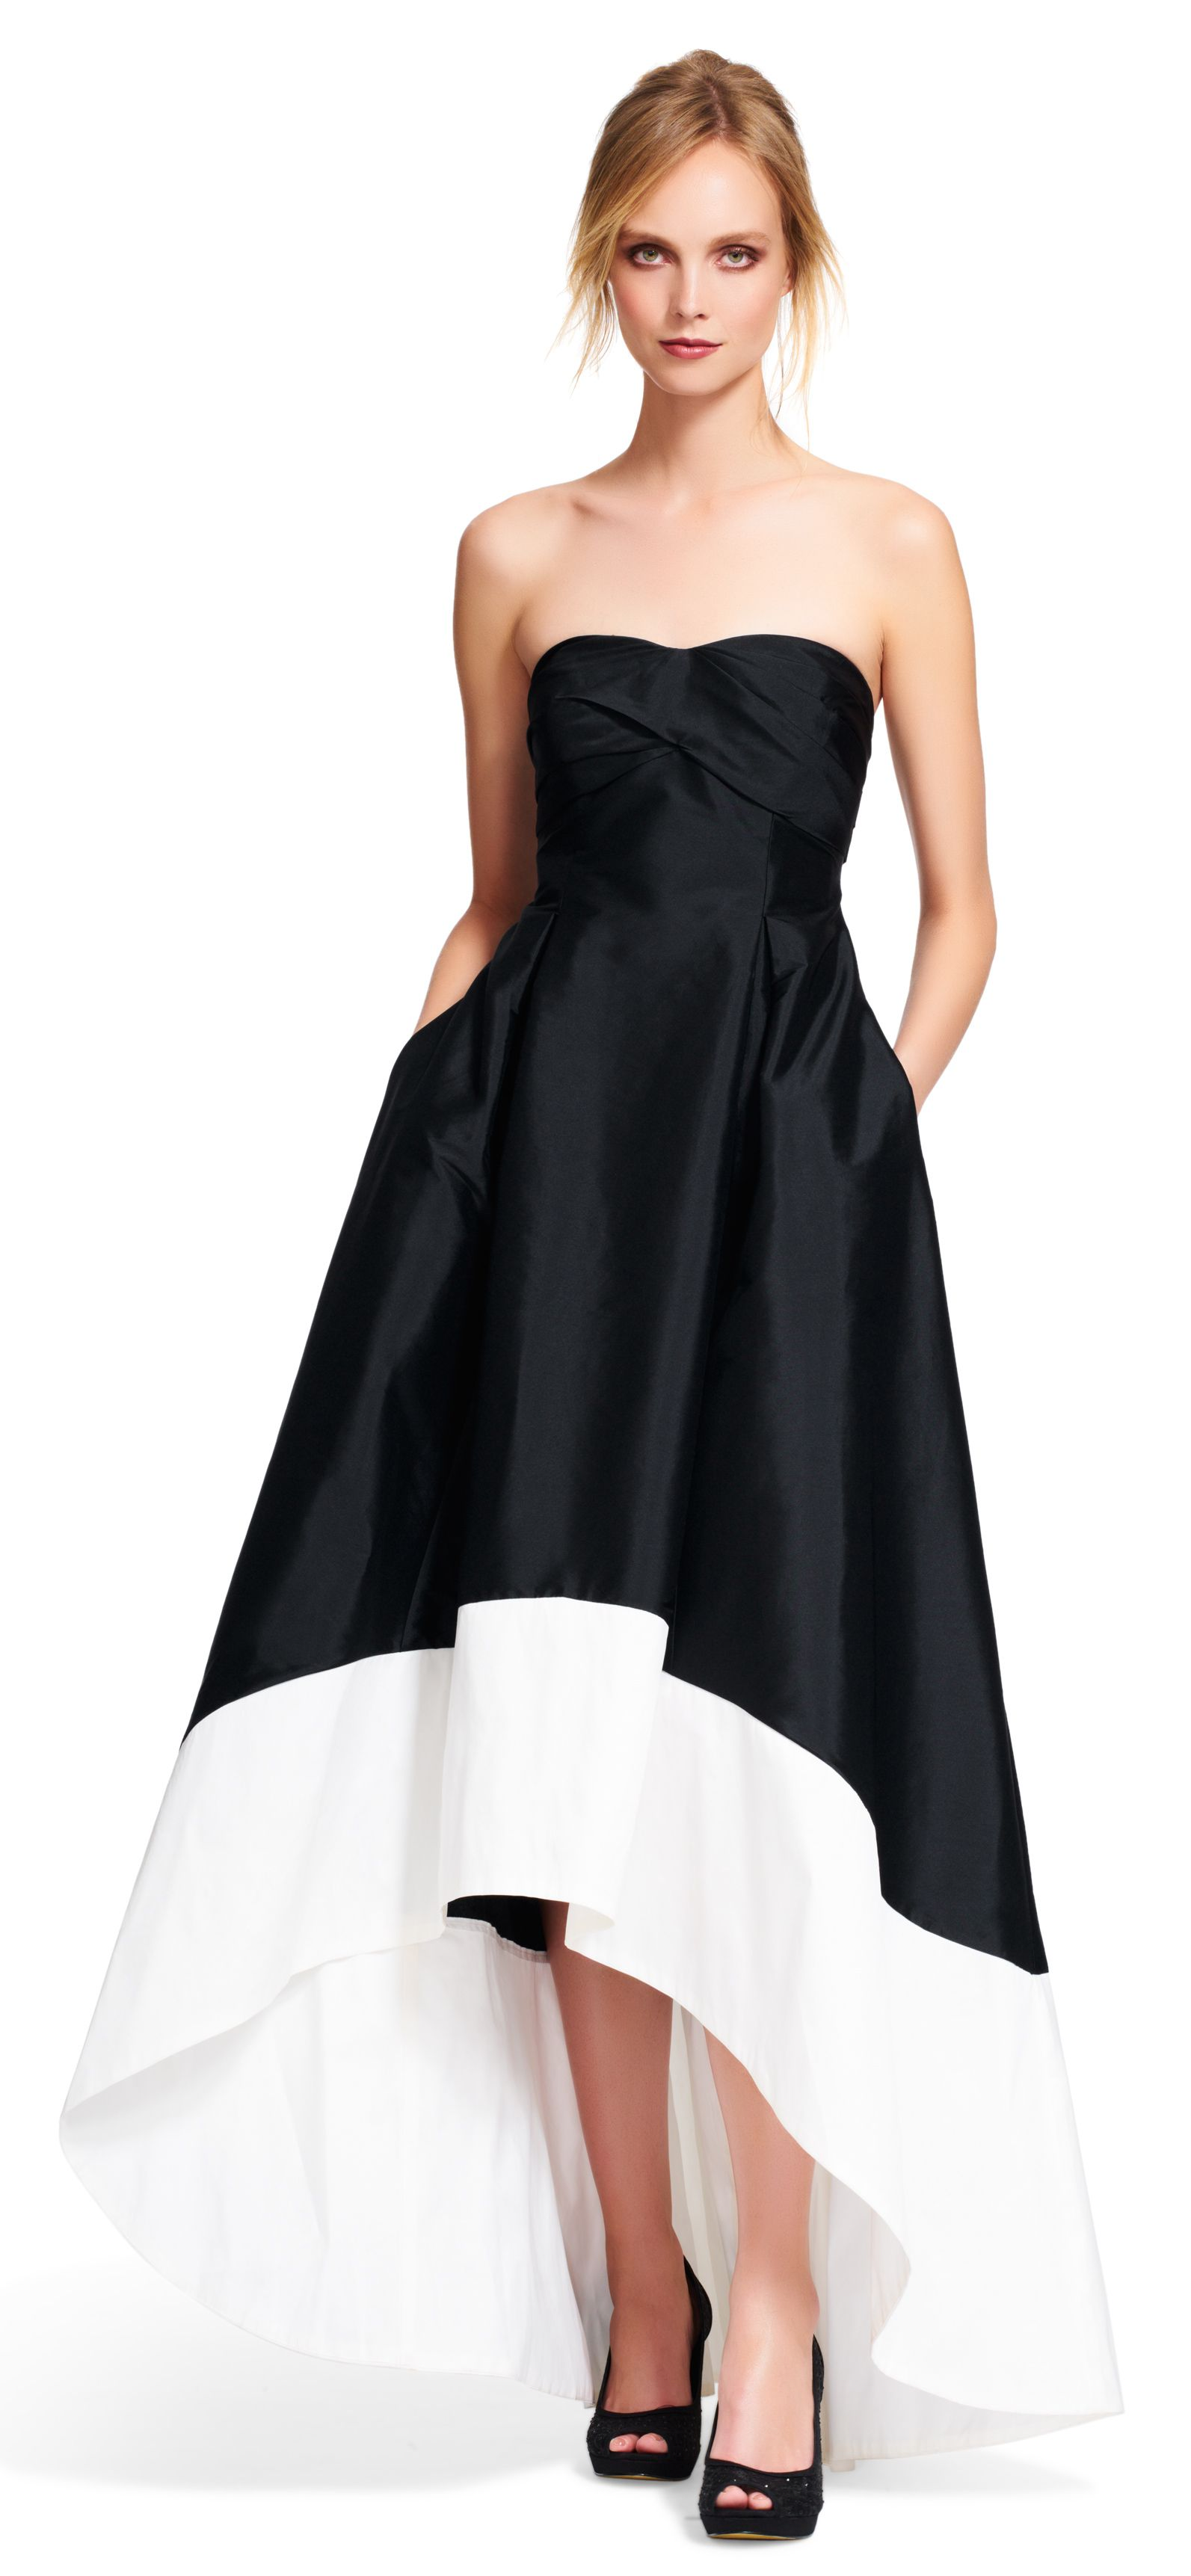 Strapless Colorblock High Low Ball Gown | Glamorous Gowns & Dresses ...